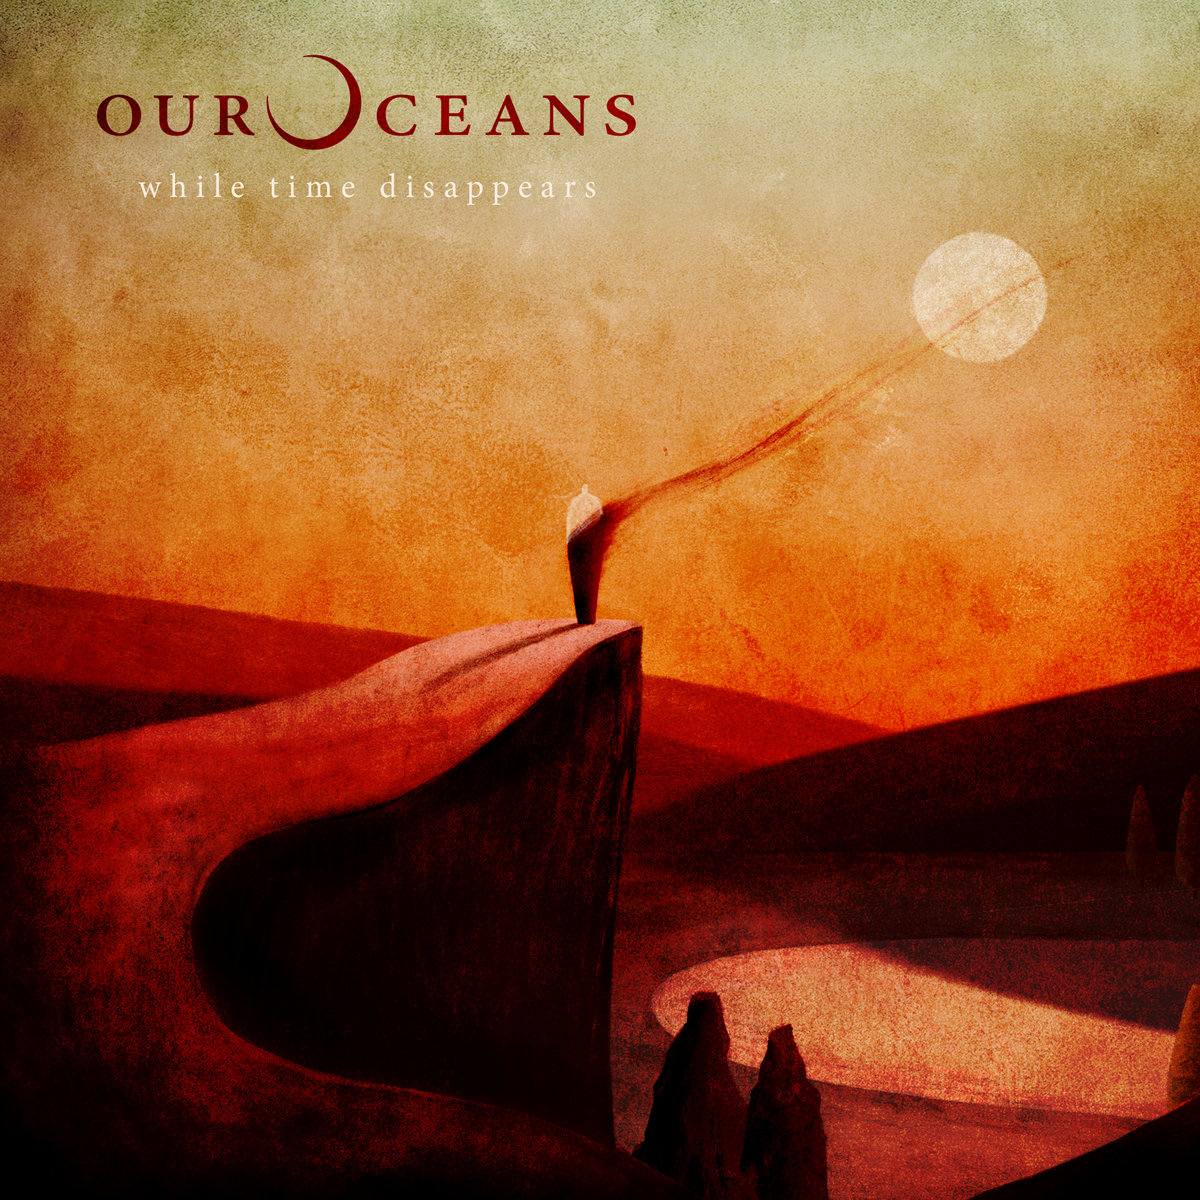 Our Oceans – While Time Disappeares